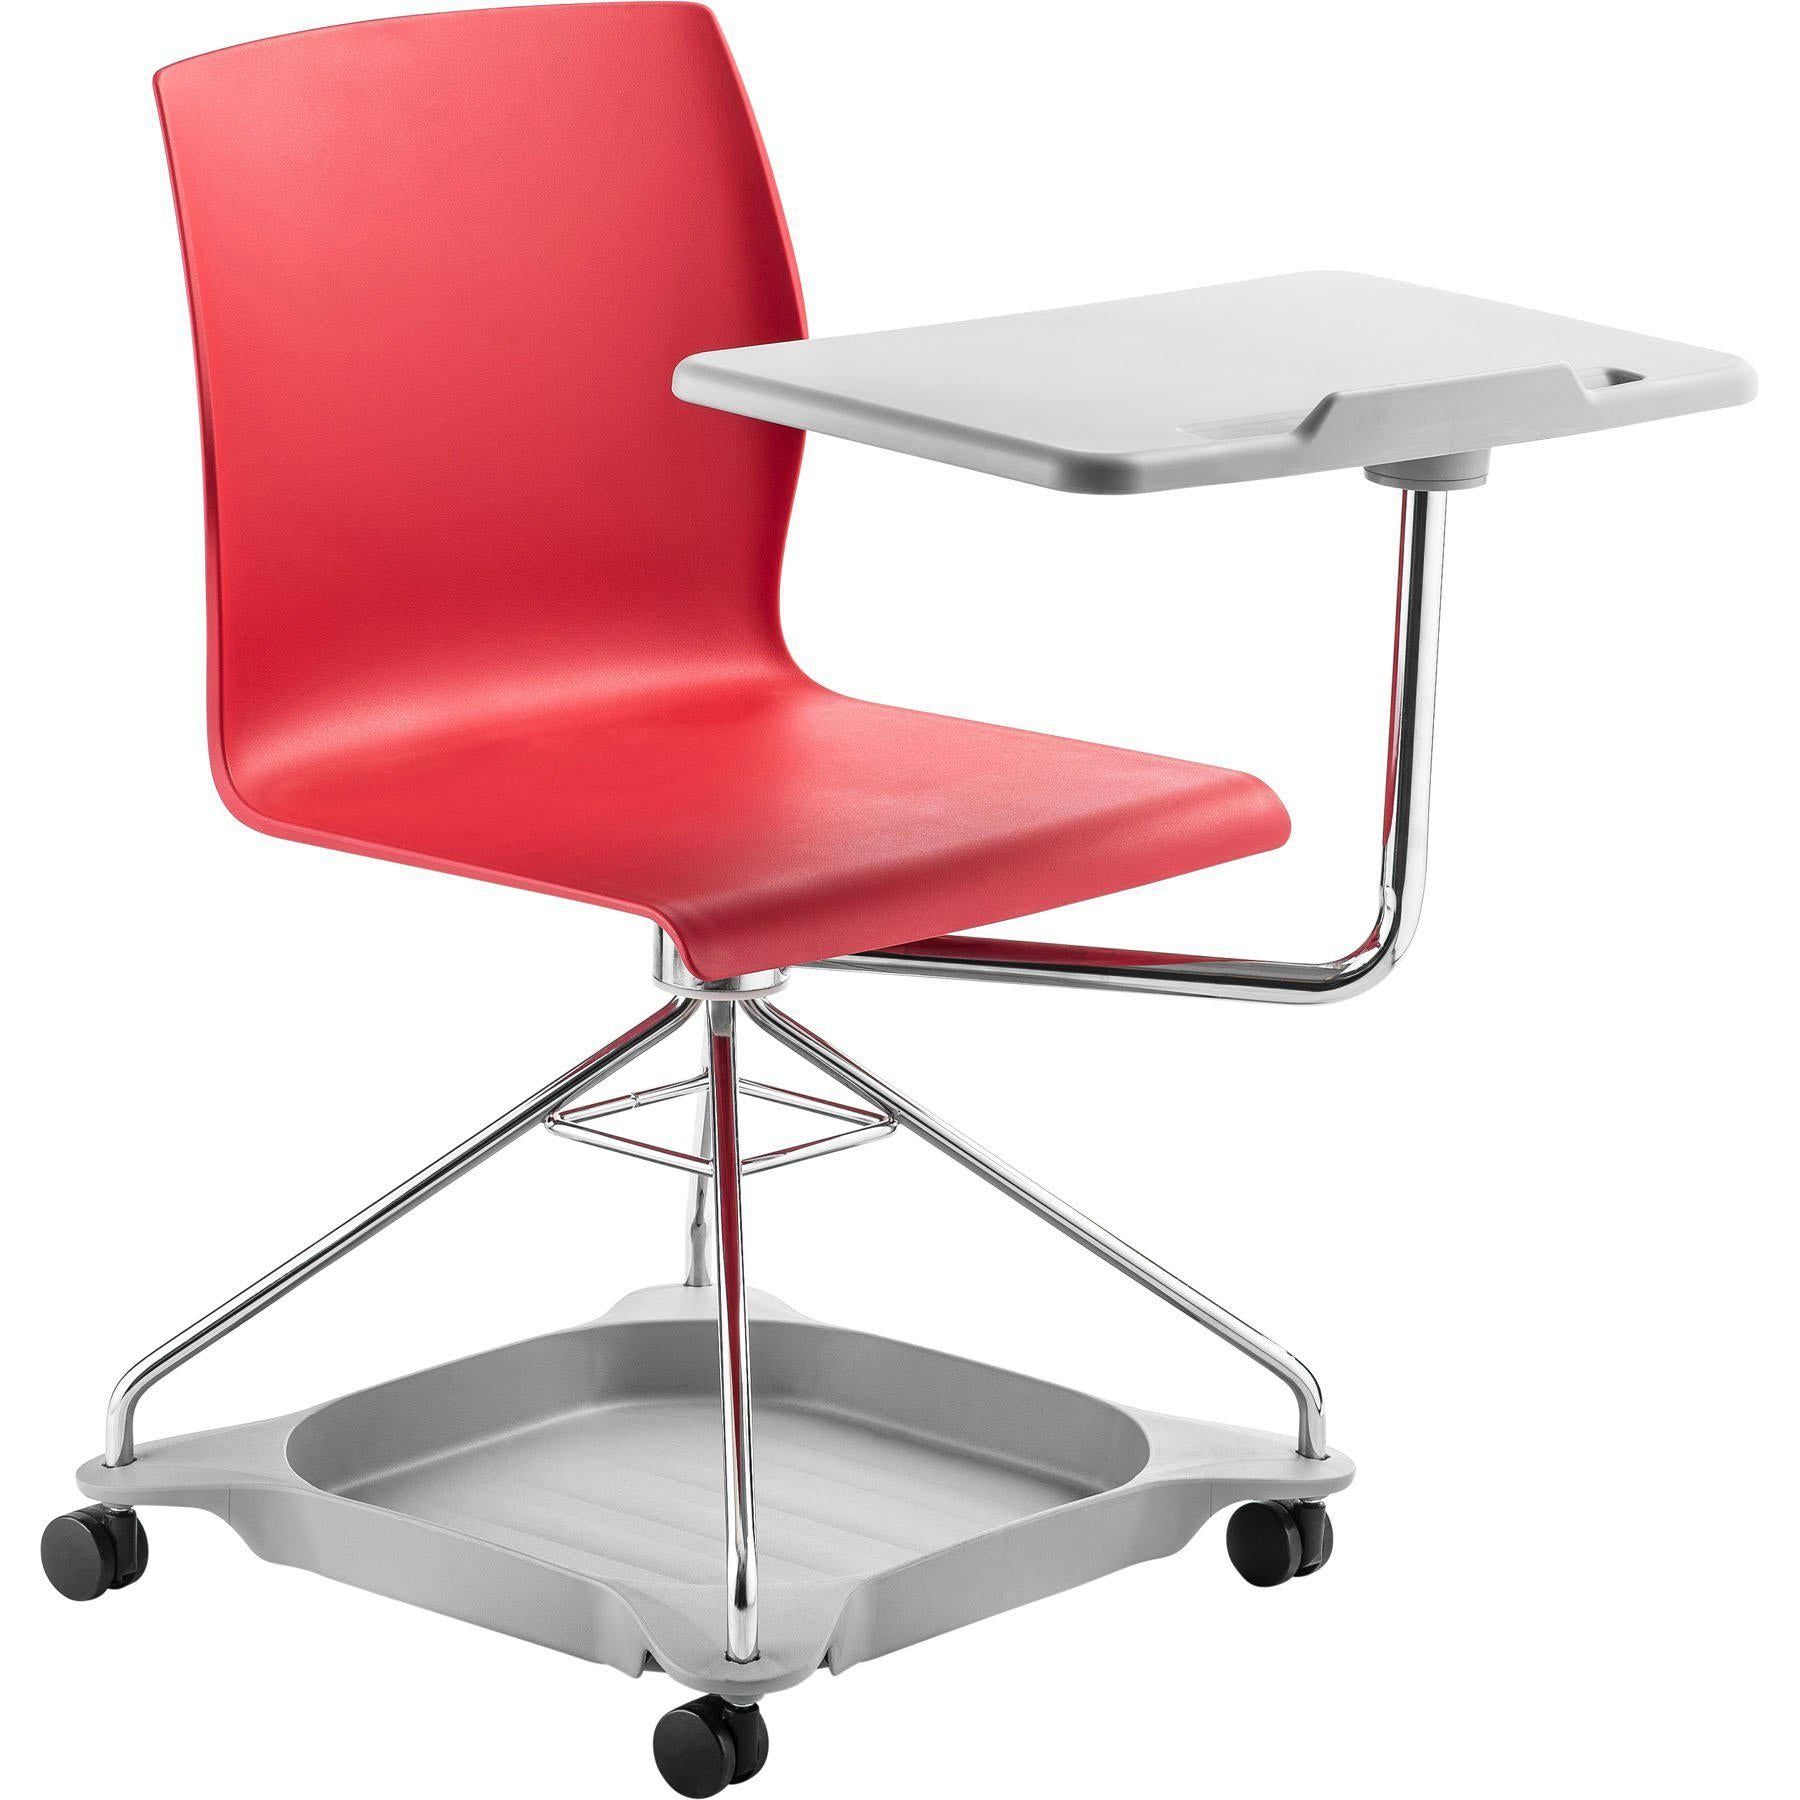 CoGo Chair on the Go Mobile Tablet Chair